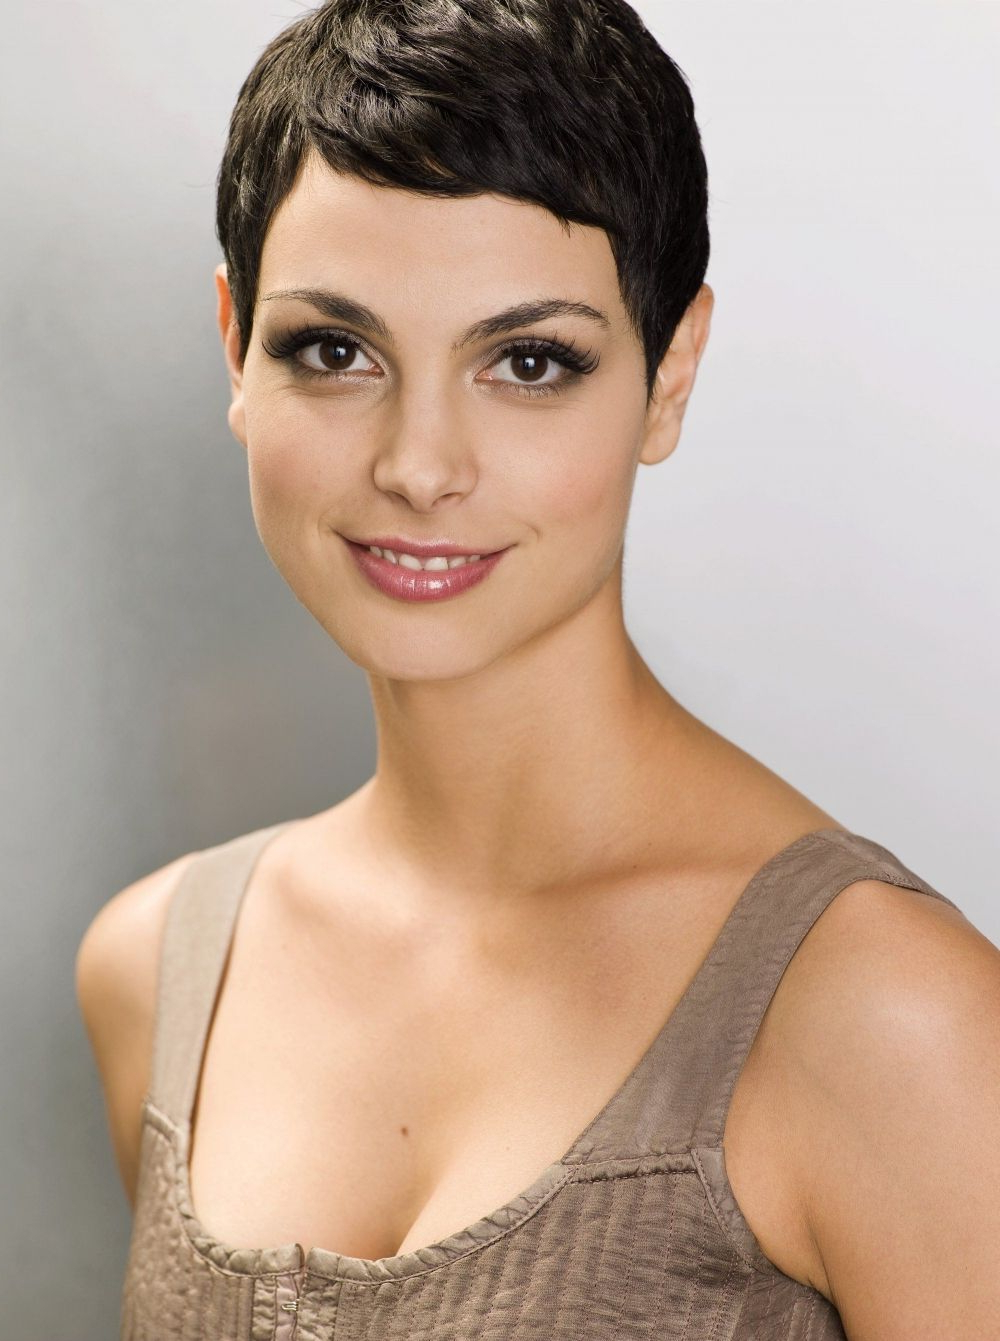 Well Known Morena Pixie Haircuts With Bangs In Morena Baccarin (View 18 of 20)